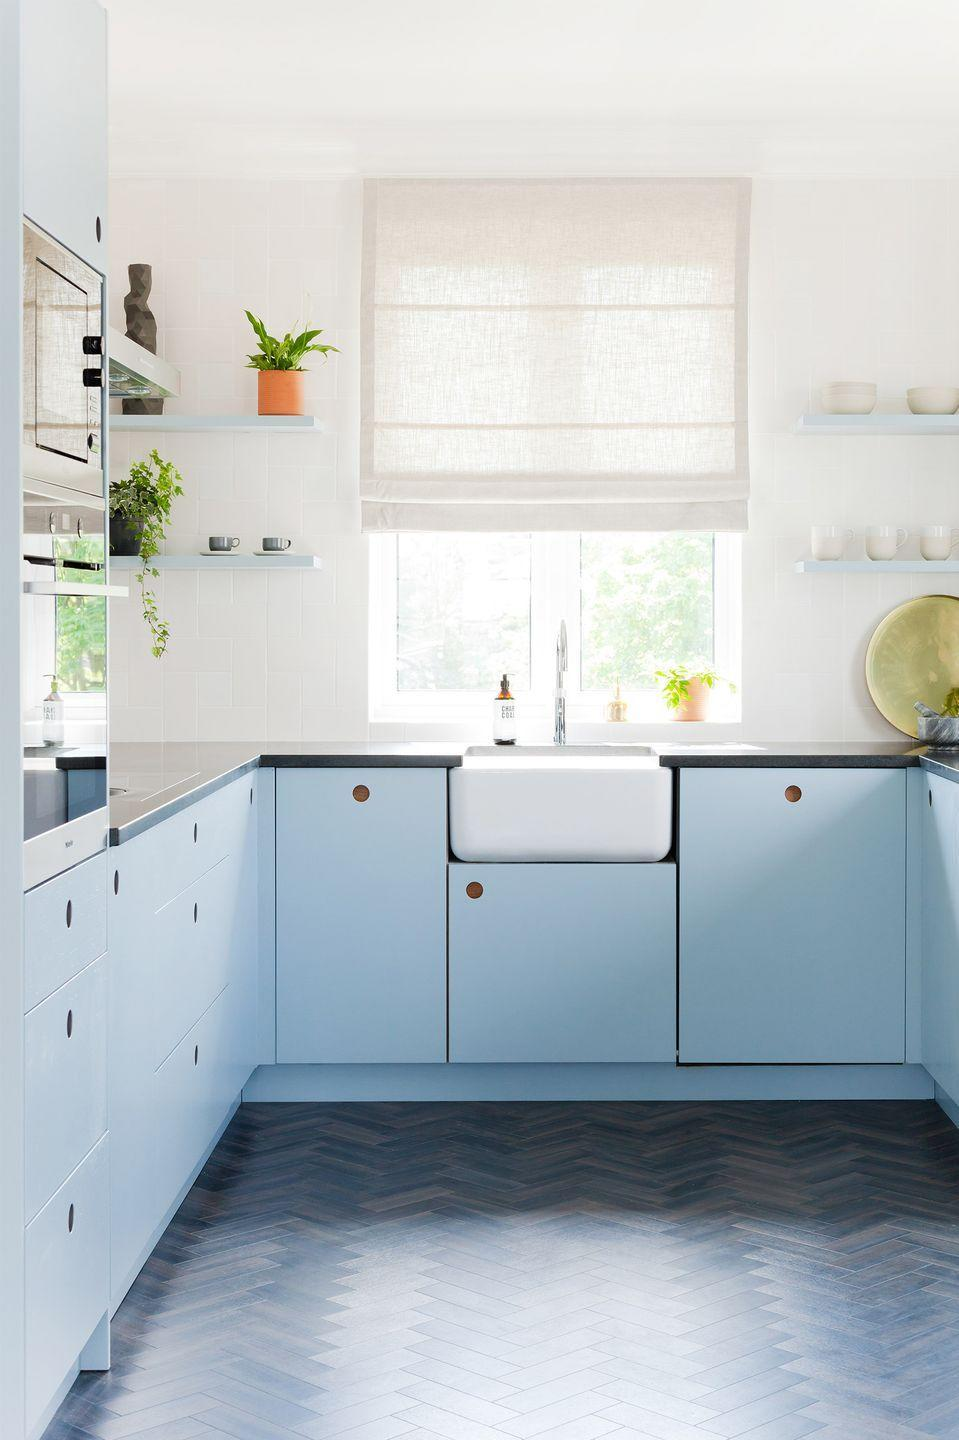 <p>If you're renovating your kitchen and want to customize cabinetry, consider hardware-free cabinets like the ones in this space designed by 2LG Studio. The round built-in handles introduce softness and consistency. </p>